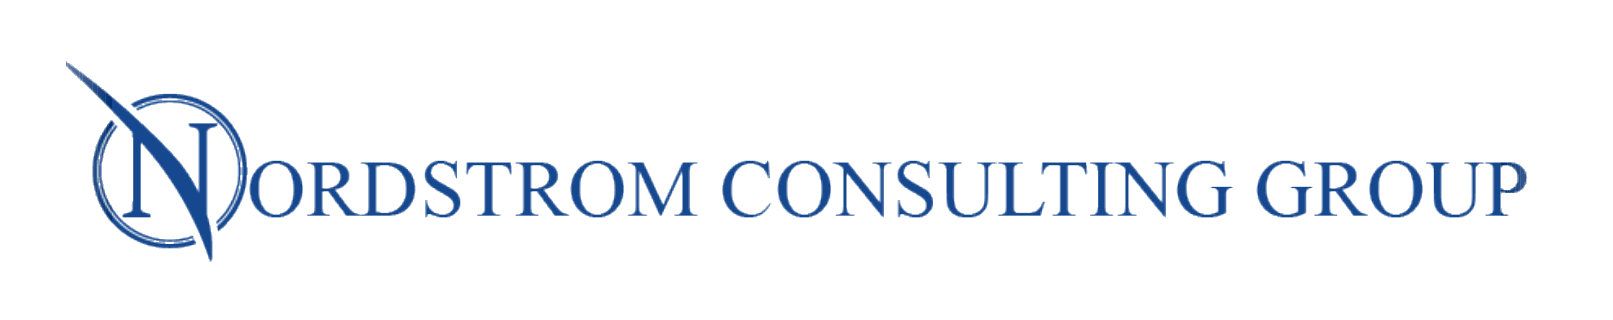 Nordstrom Consulting Group, Inc